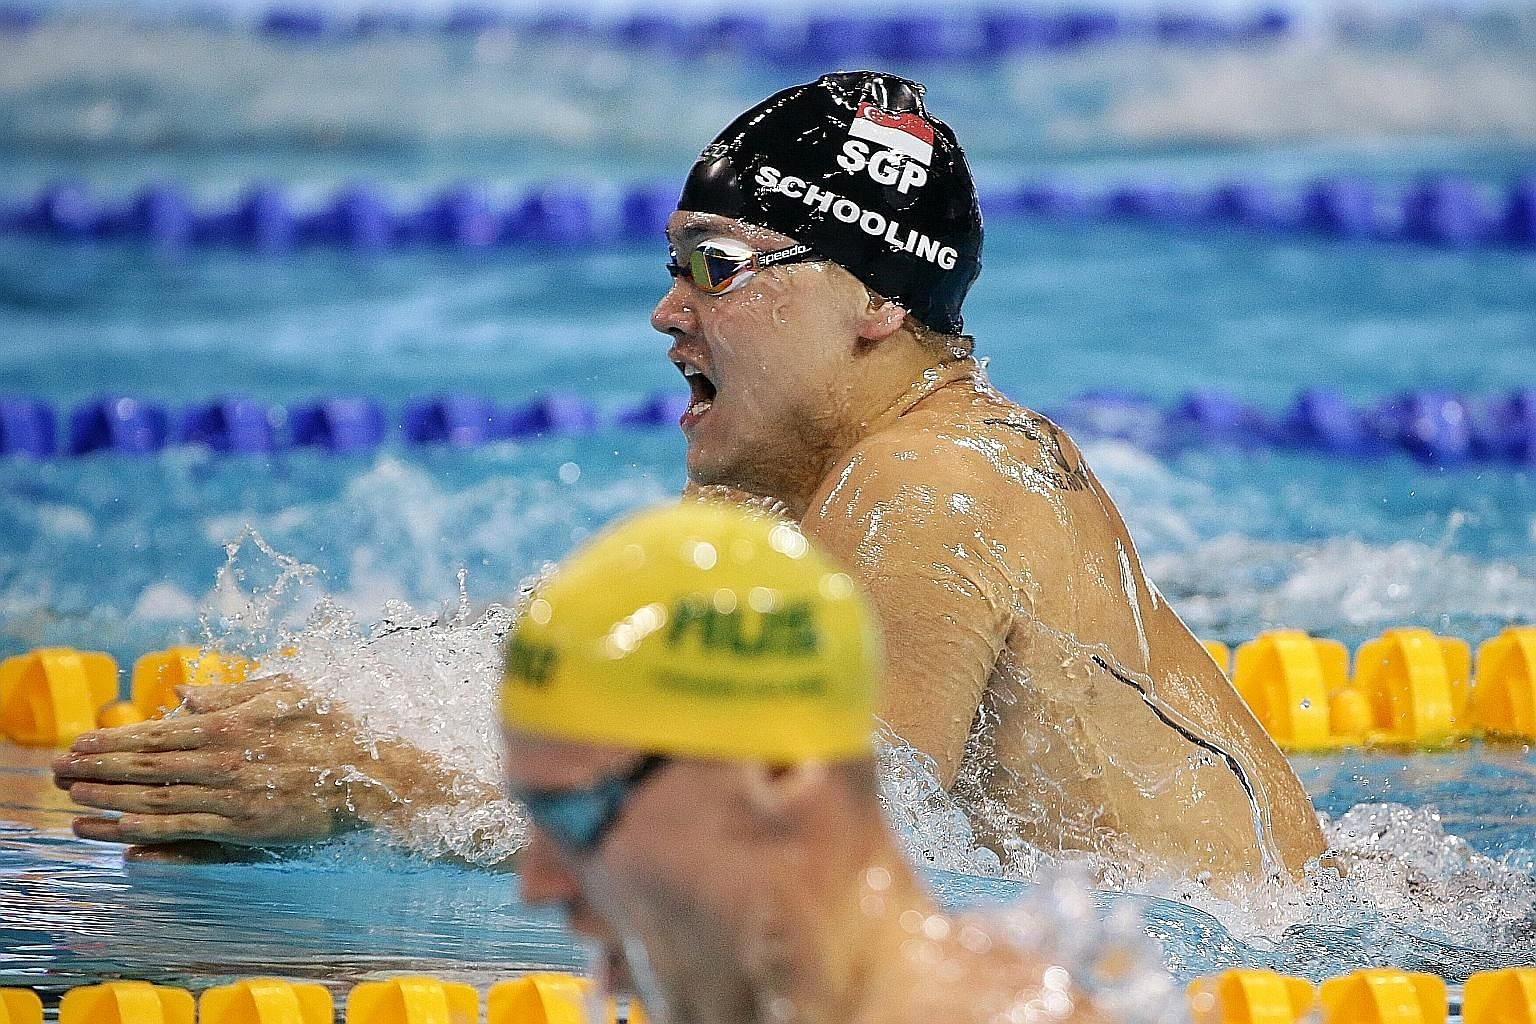 Joseph Schooling competing in the 200m individual medley final of Fina World Cup Singapore leg at the OCBC Aquatic Centre last night. He clocked 2min 0.23sec, just off his national record of 1:59.99, to finish fourth.